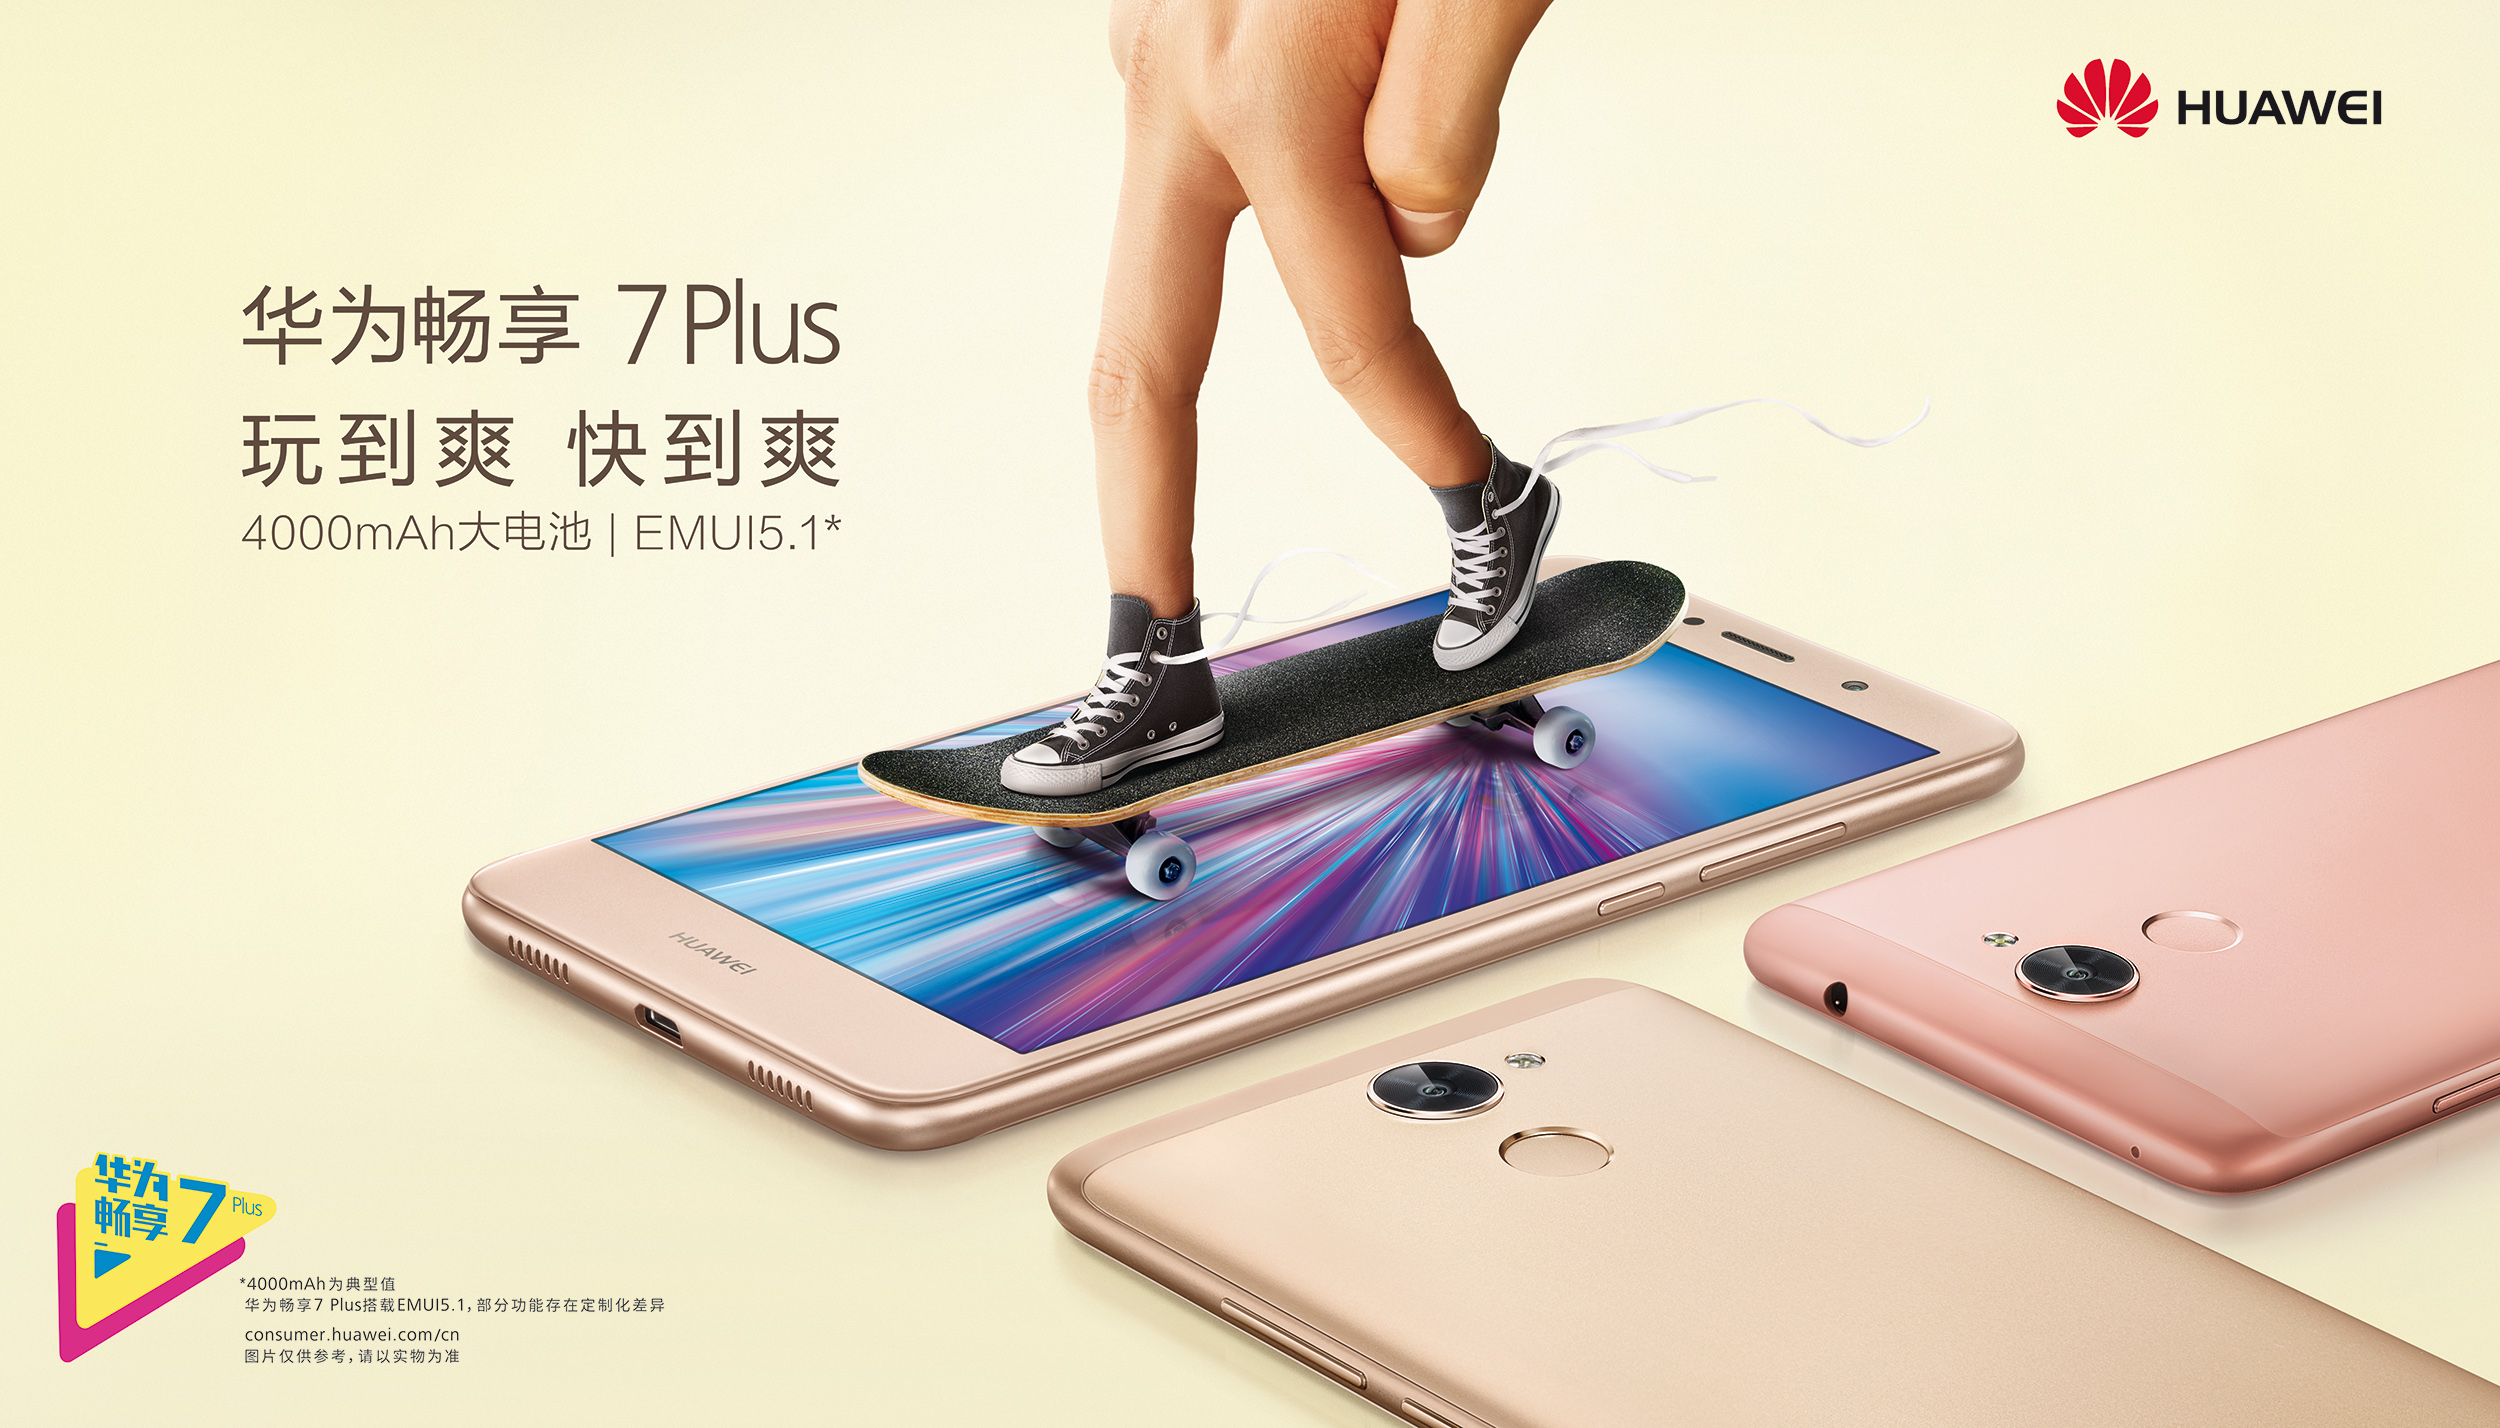 Huawei_Changxiang_skateboard_7Plus